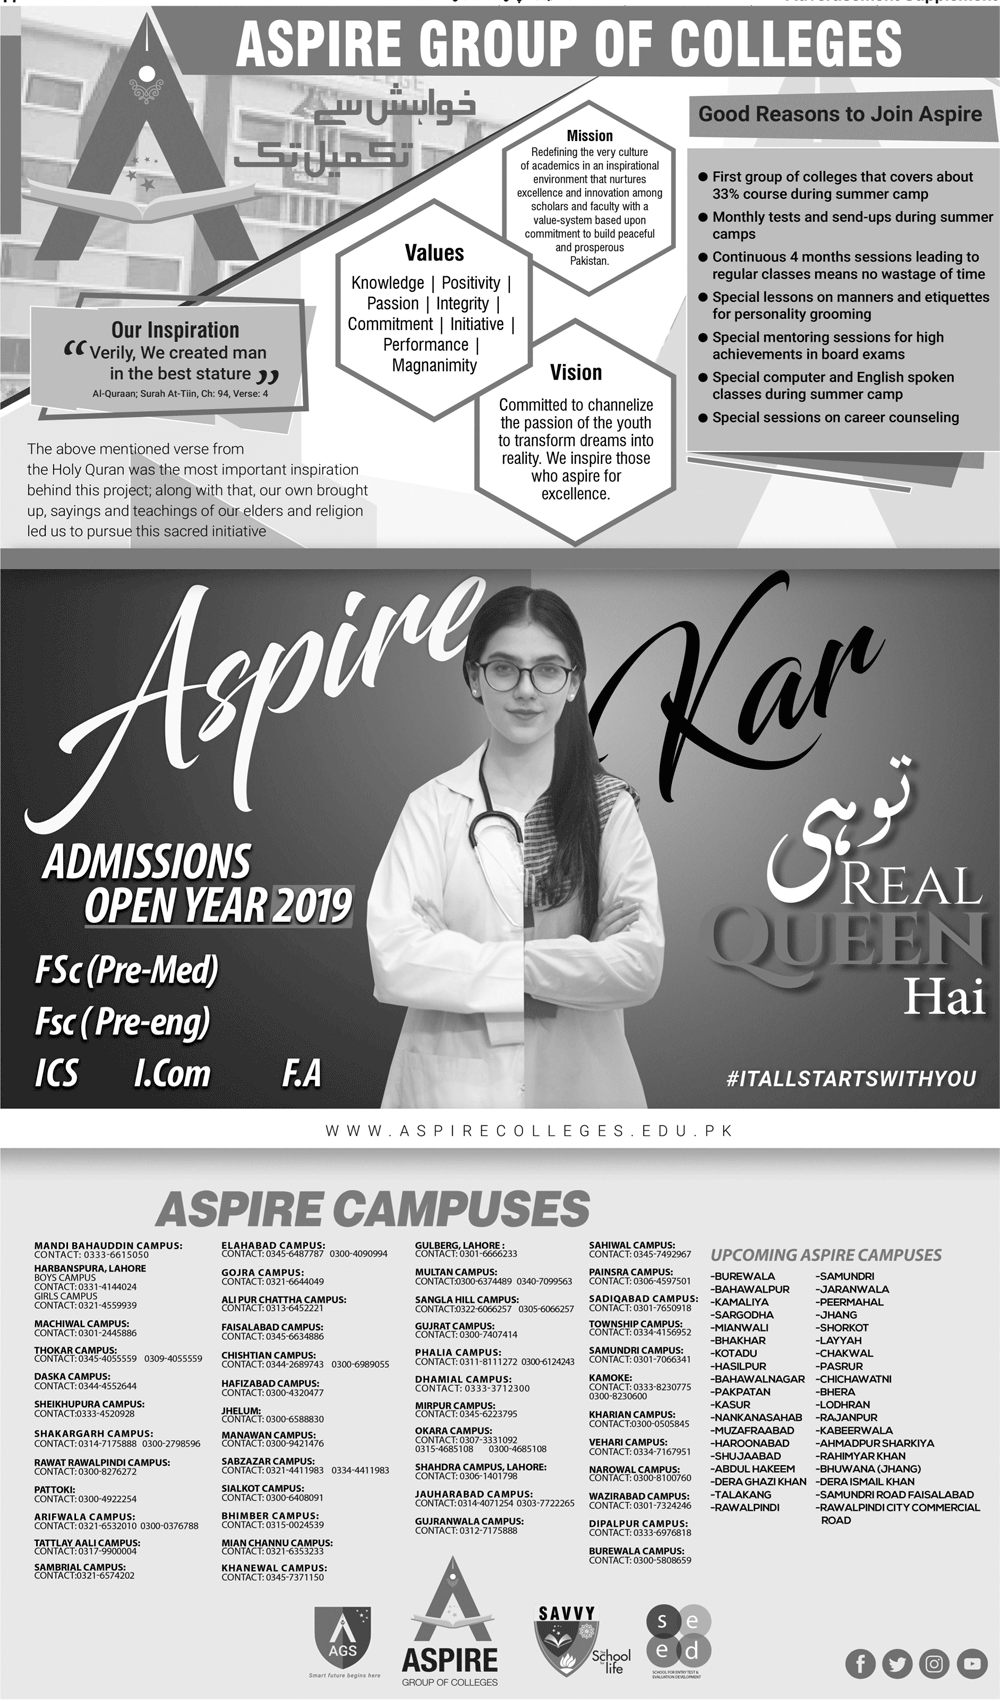 Aspire Group of Colleges 1st Year Admission 2019, Scholarships